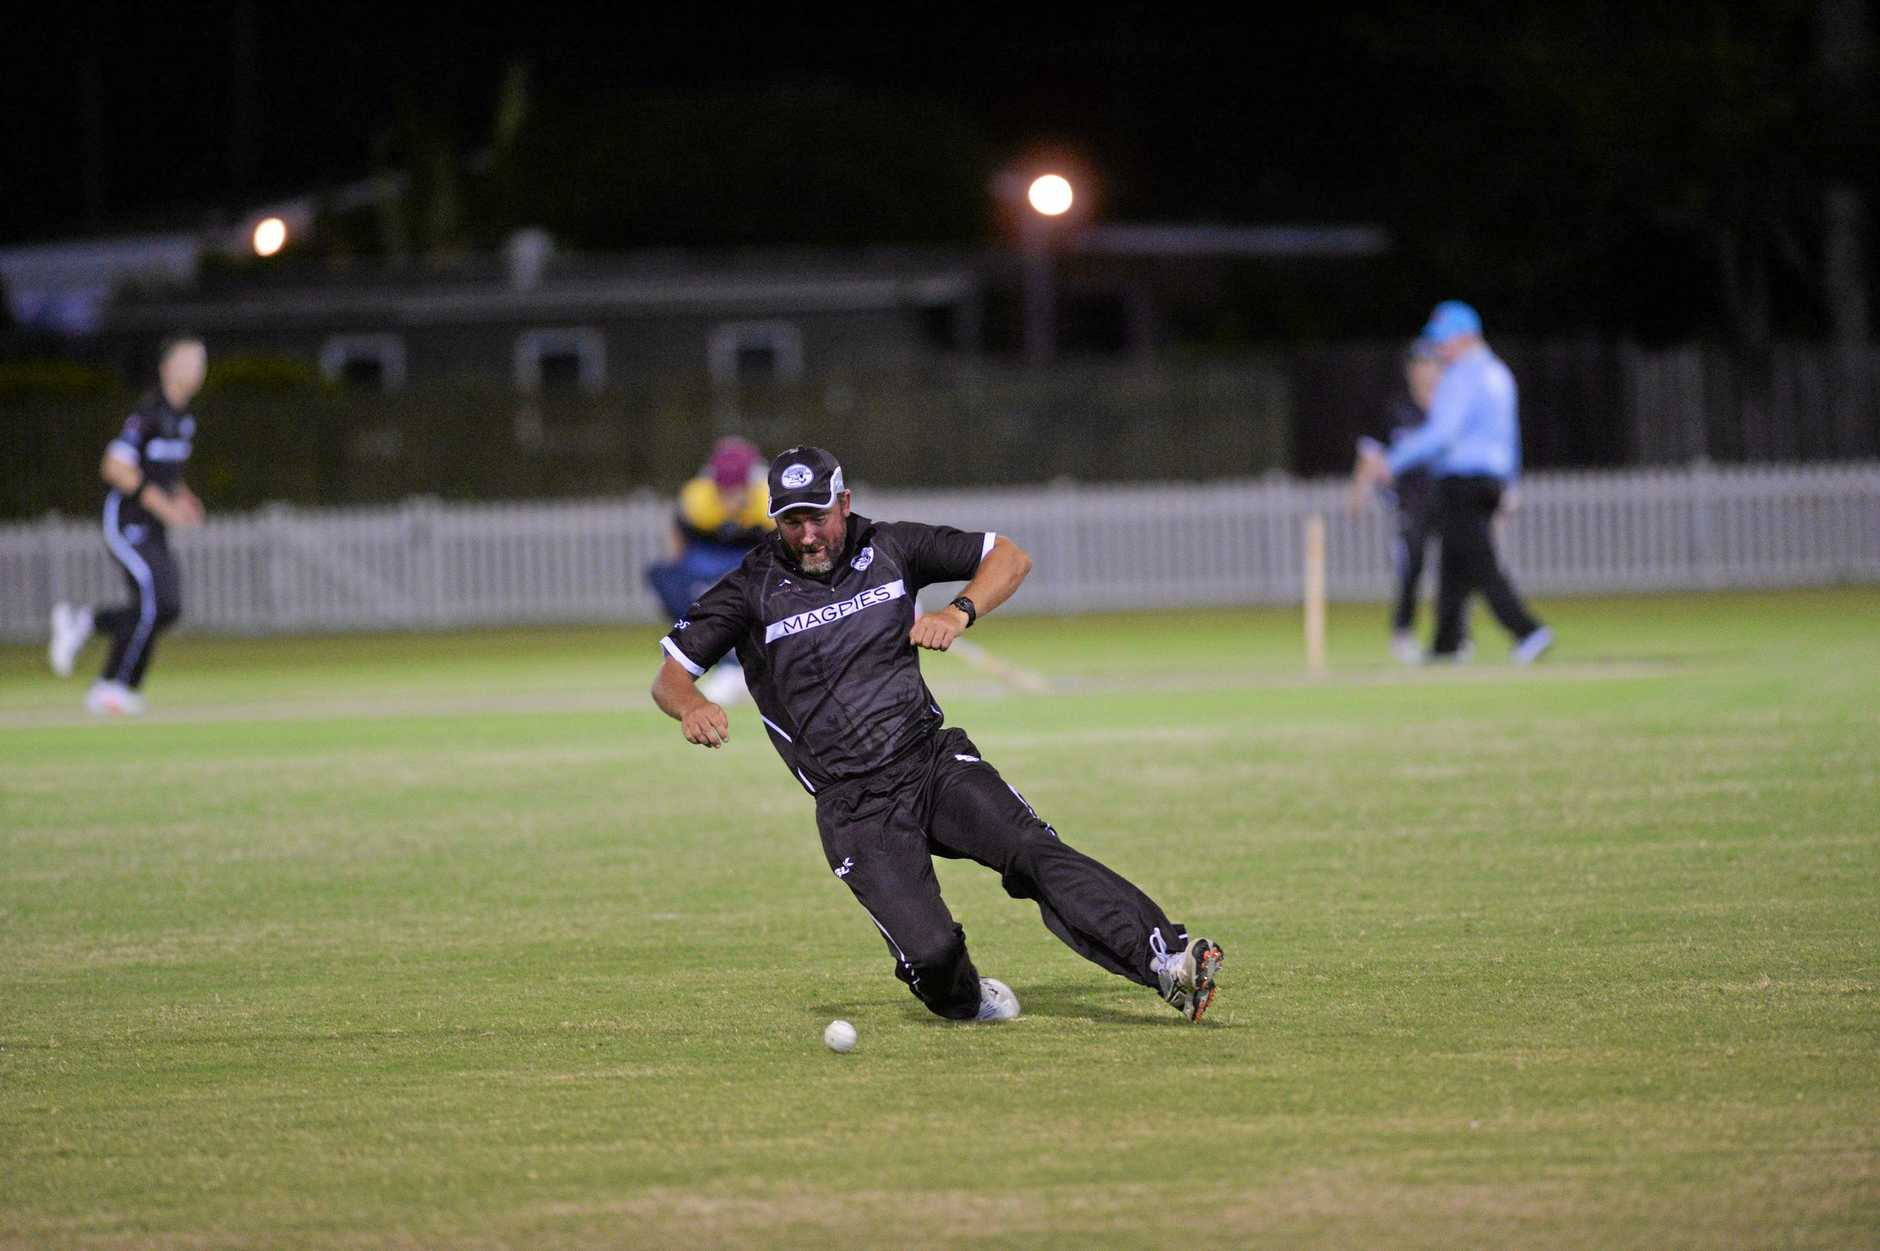 A magpies fielder makes a slide to stop a ball bound for the boundary.